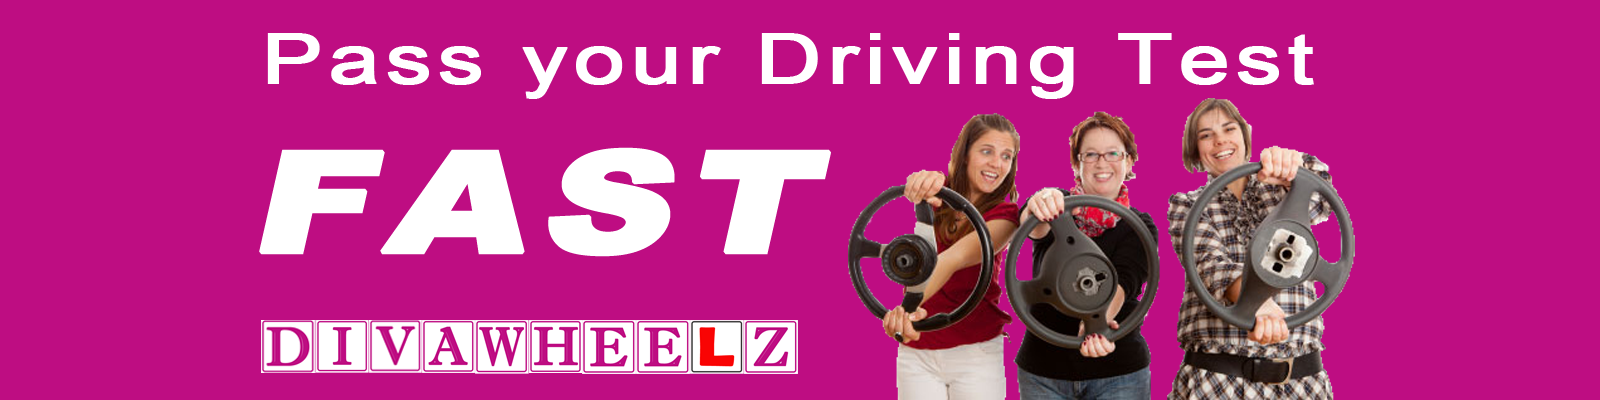 pass-your-driving-test-fast